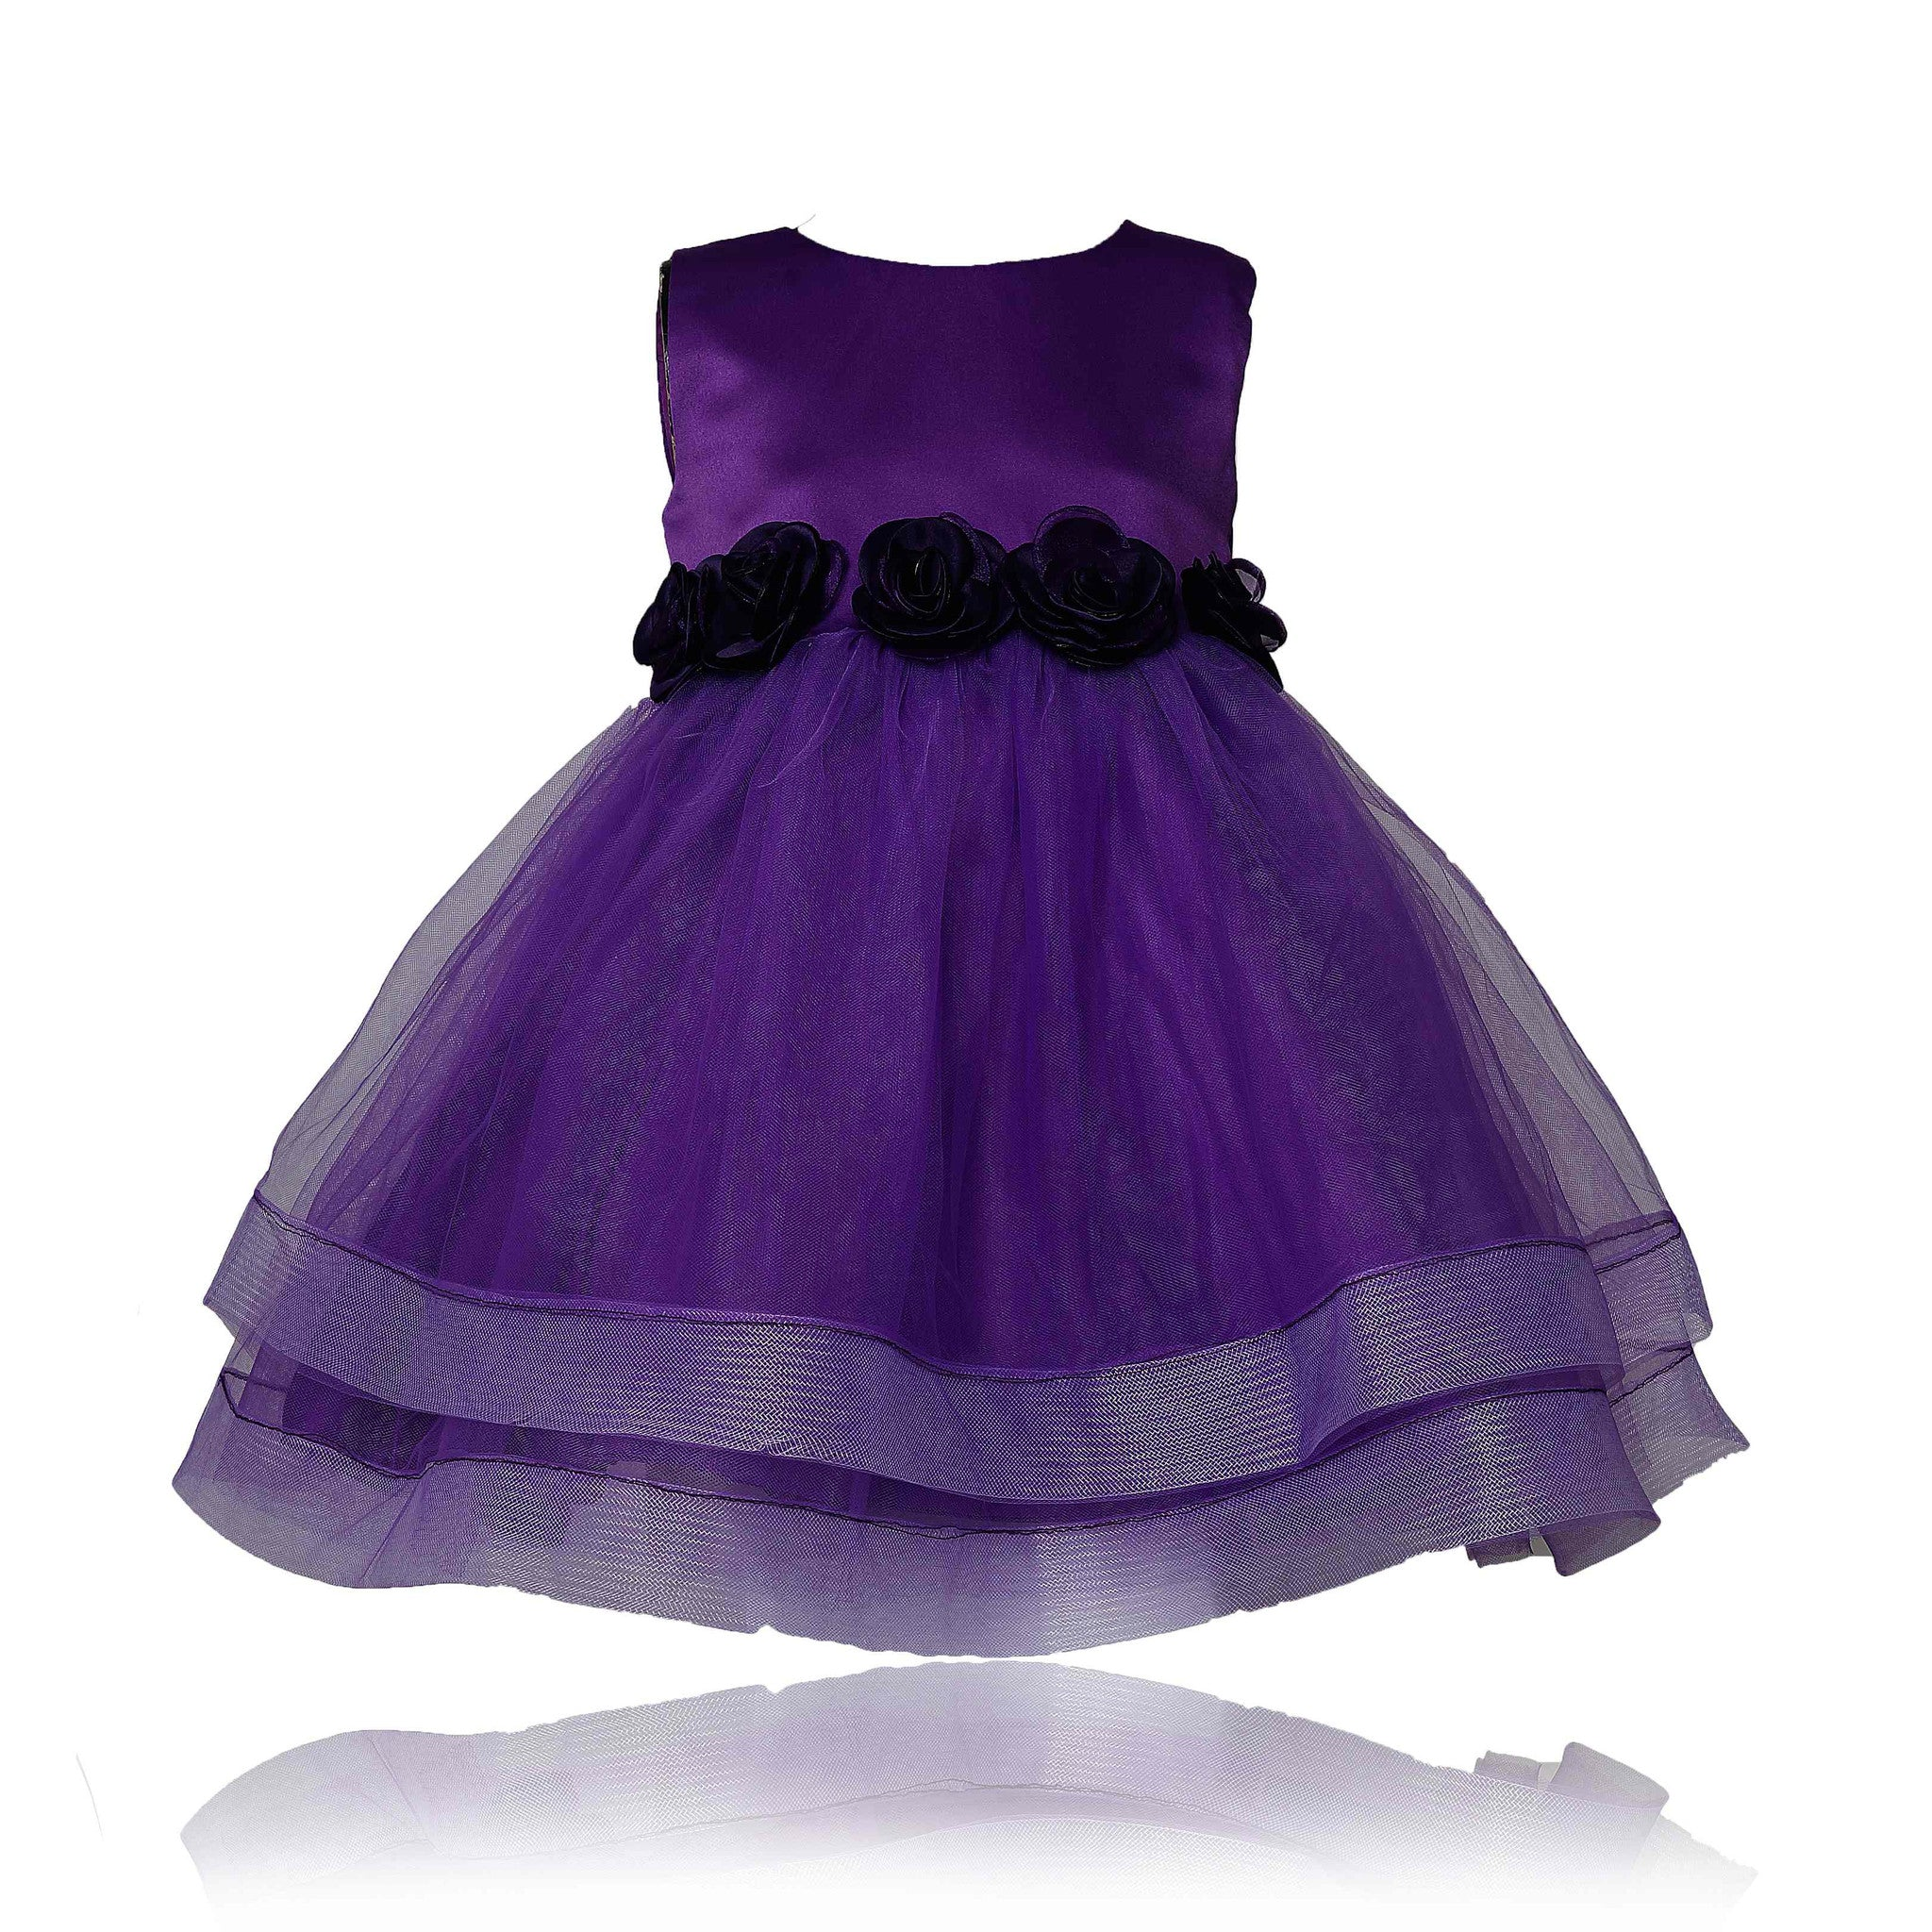 046f0efb11ae Buy Coctail Purple Mesh Top For Girls Online - Coctail